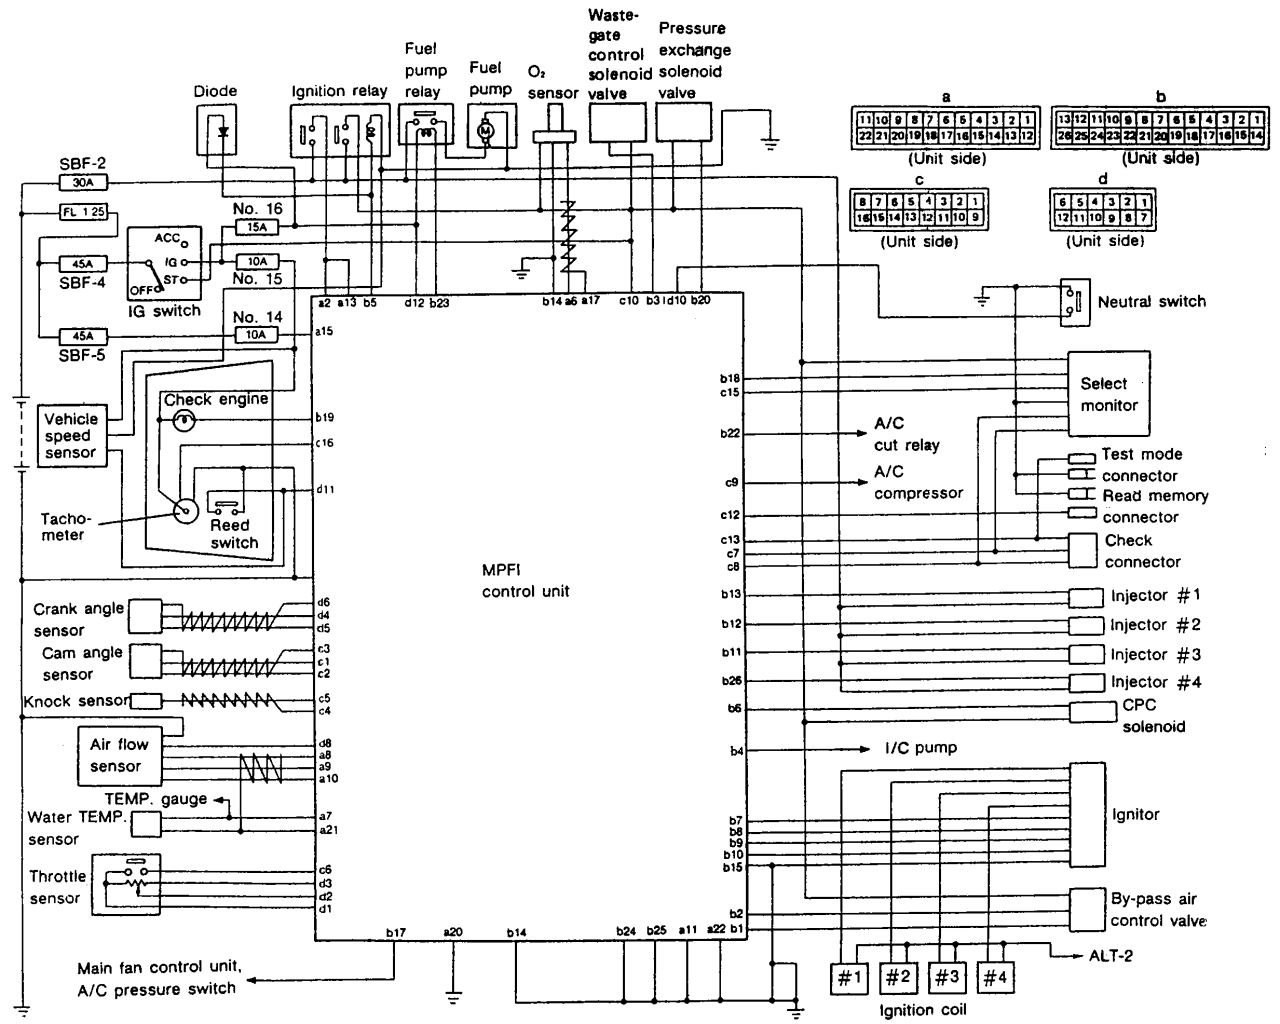 1996 Subaru Legacy Stereo Wiring Diagram FULL Version HD Quality Wiring  Diagram - TYBO.AS4A.FRAS4A.FR